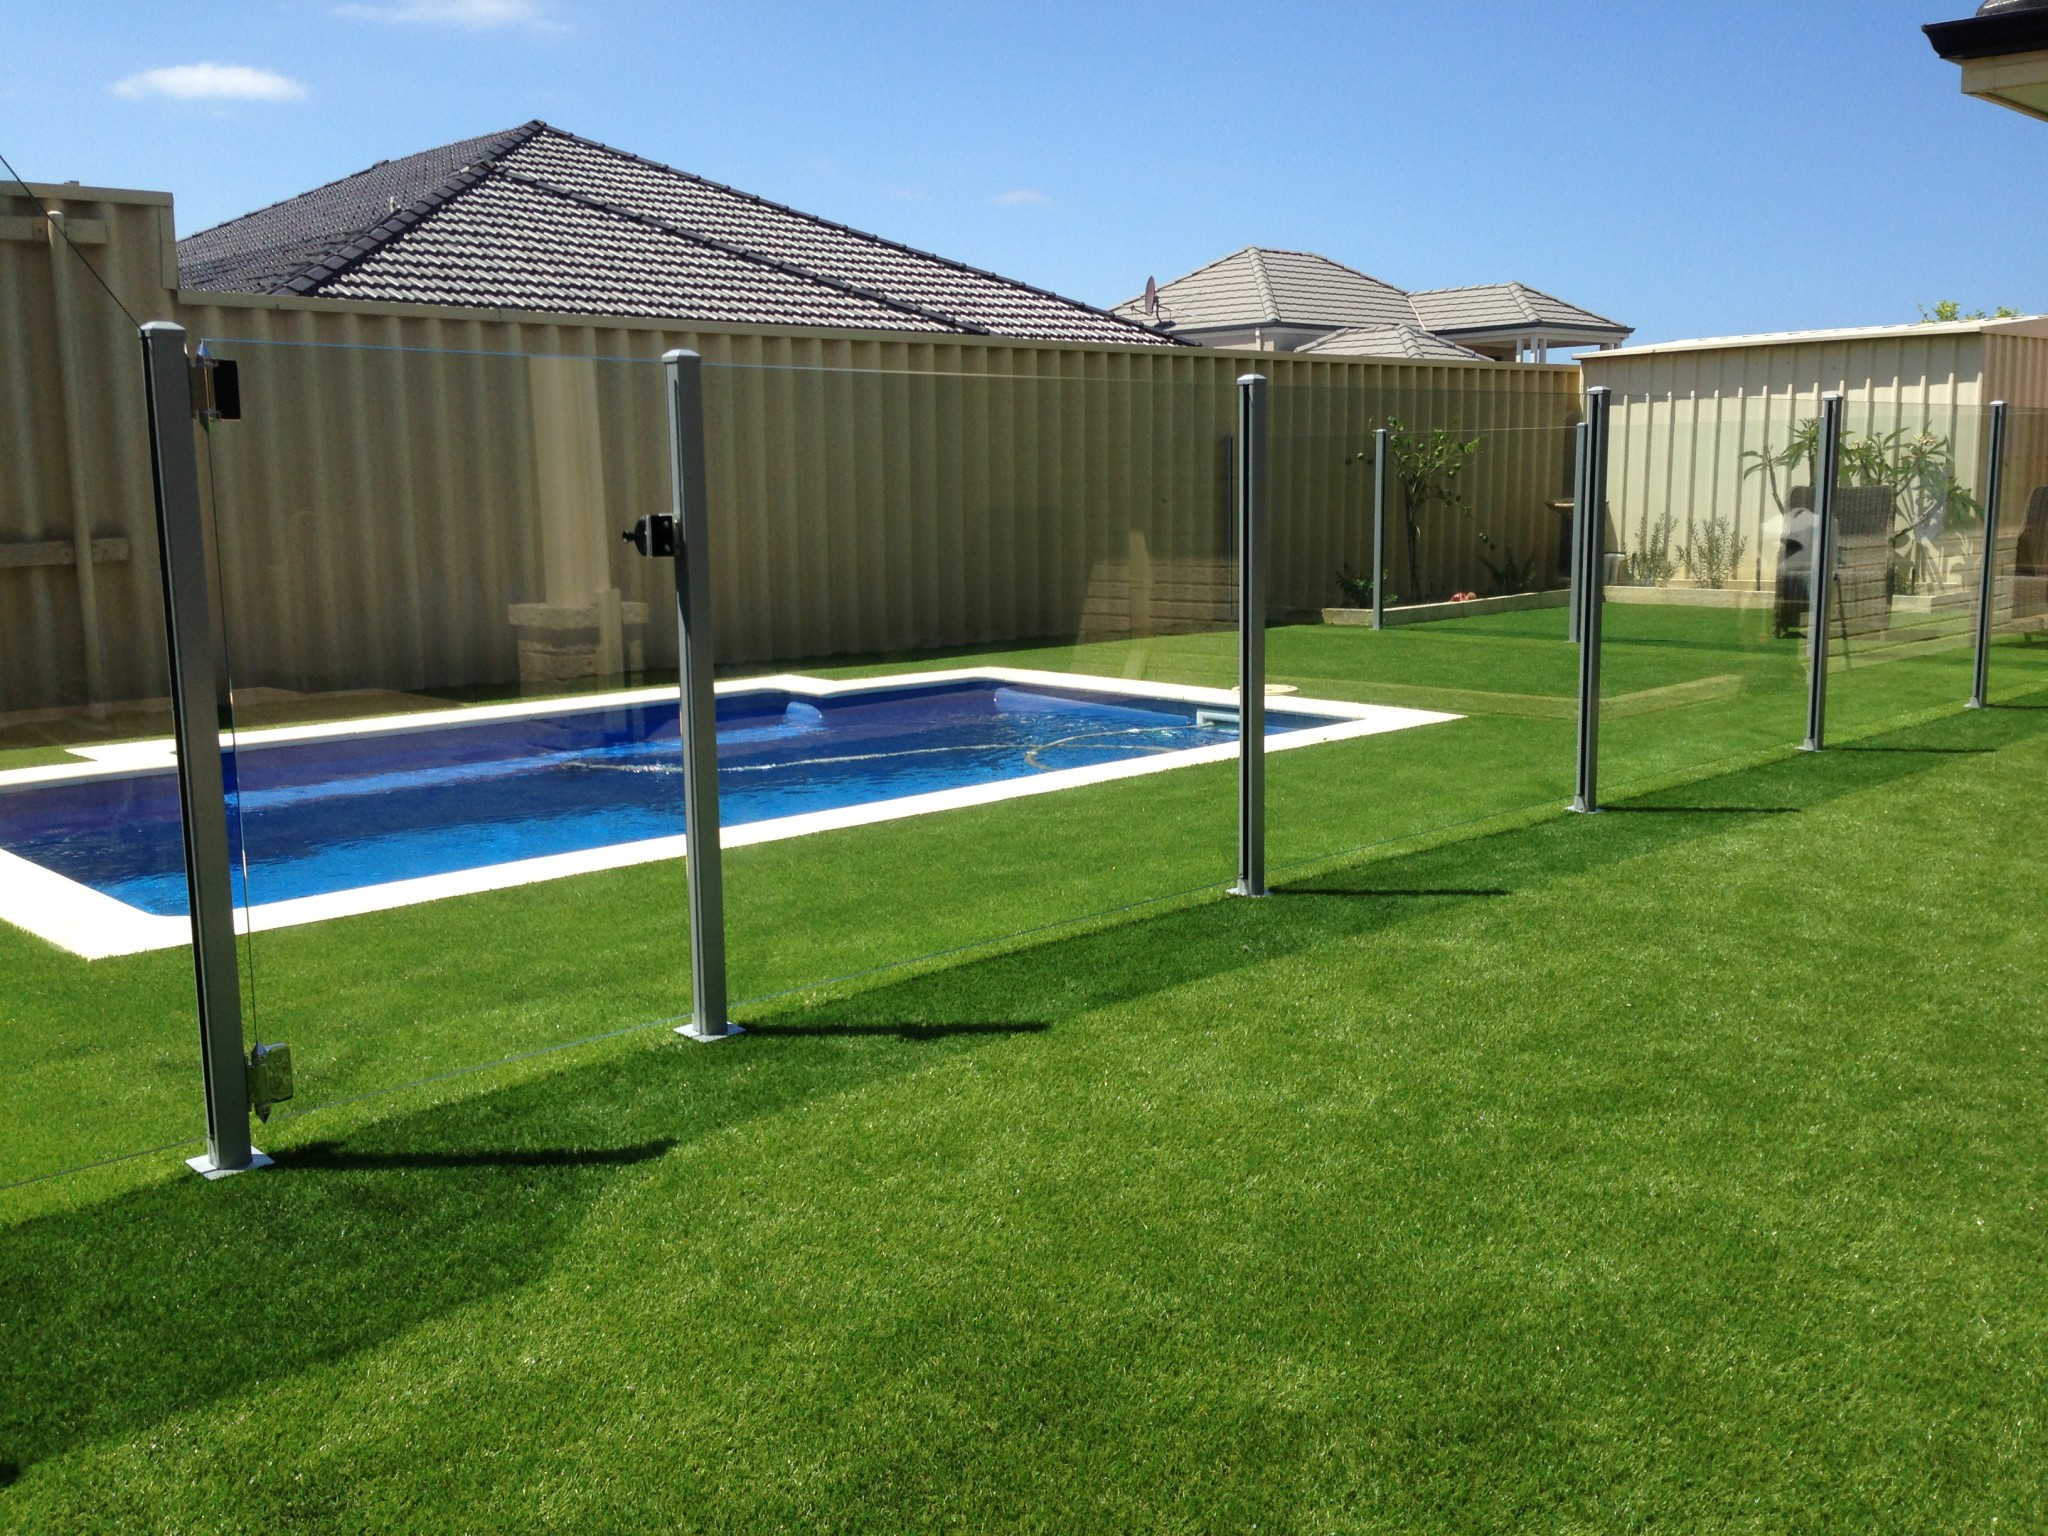 Glass pool fencing craftsman fencing for Glass pool fences